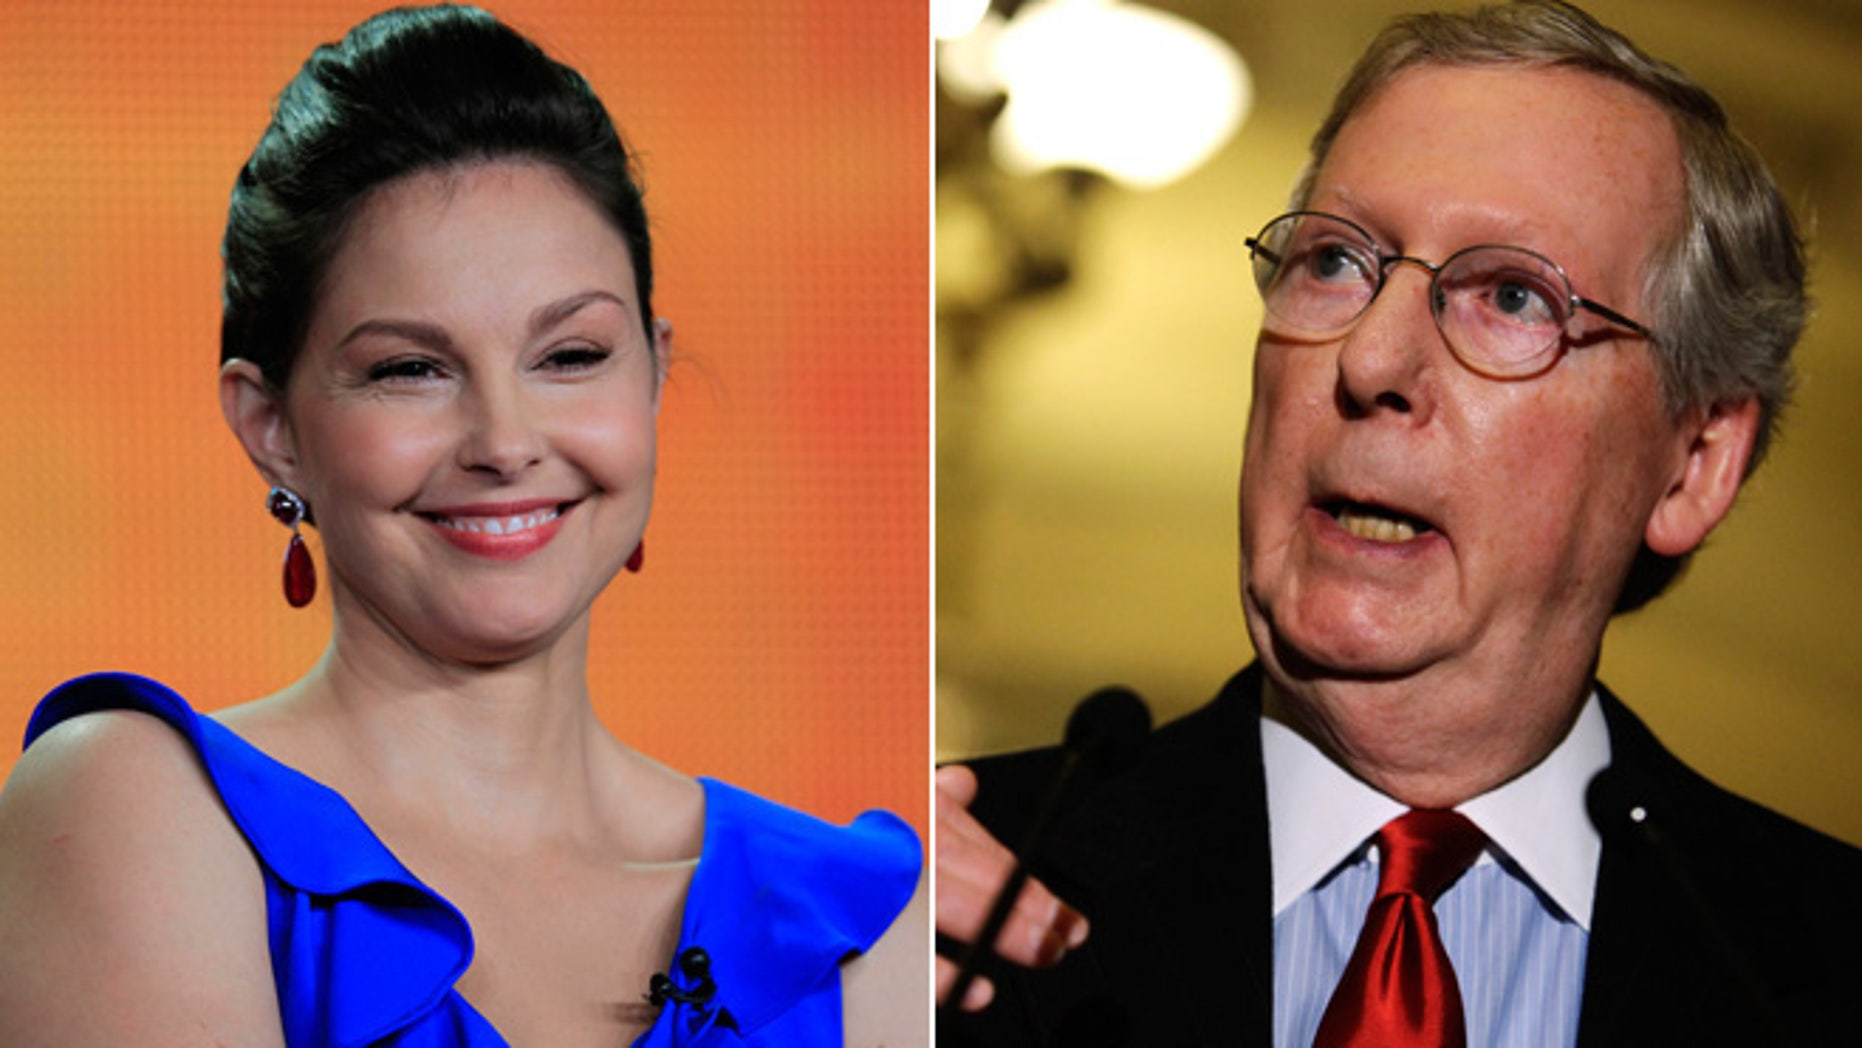 FILE: Undated: Actress Ashley Judd and Kentucky Republican Sen. Mitch McConnell.